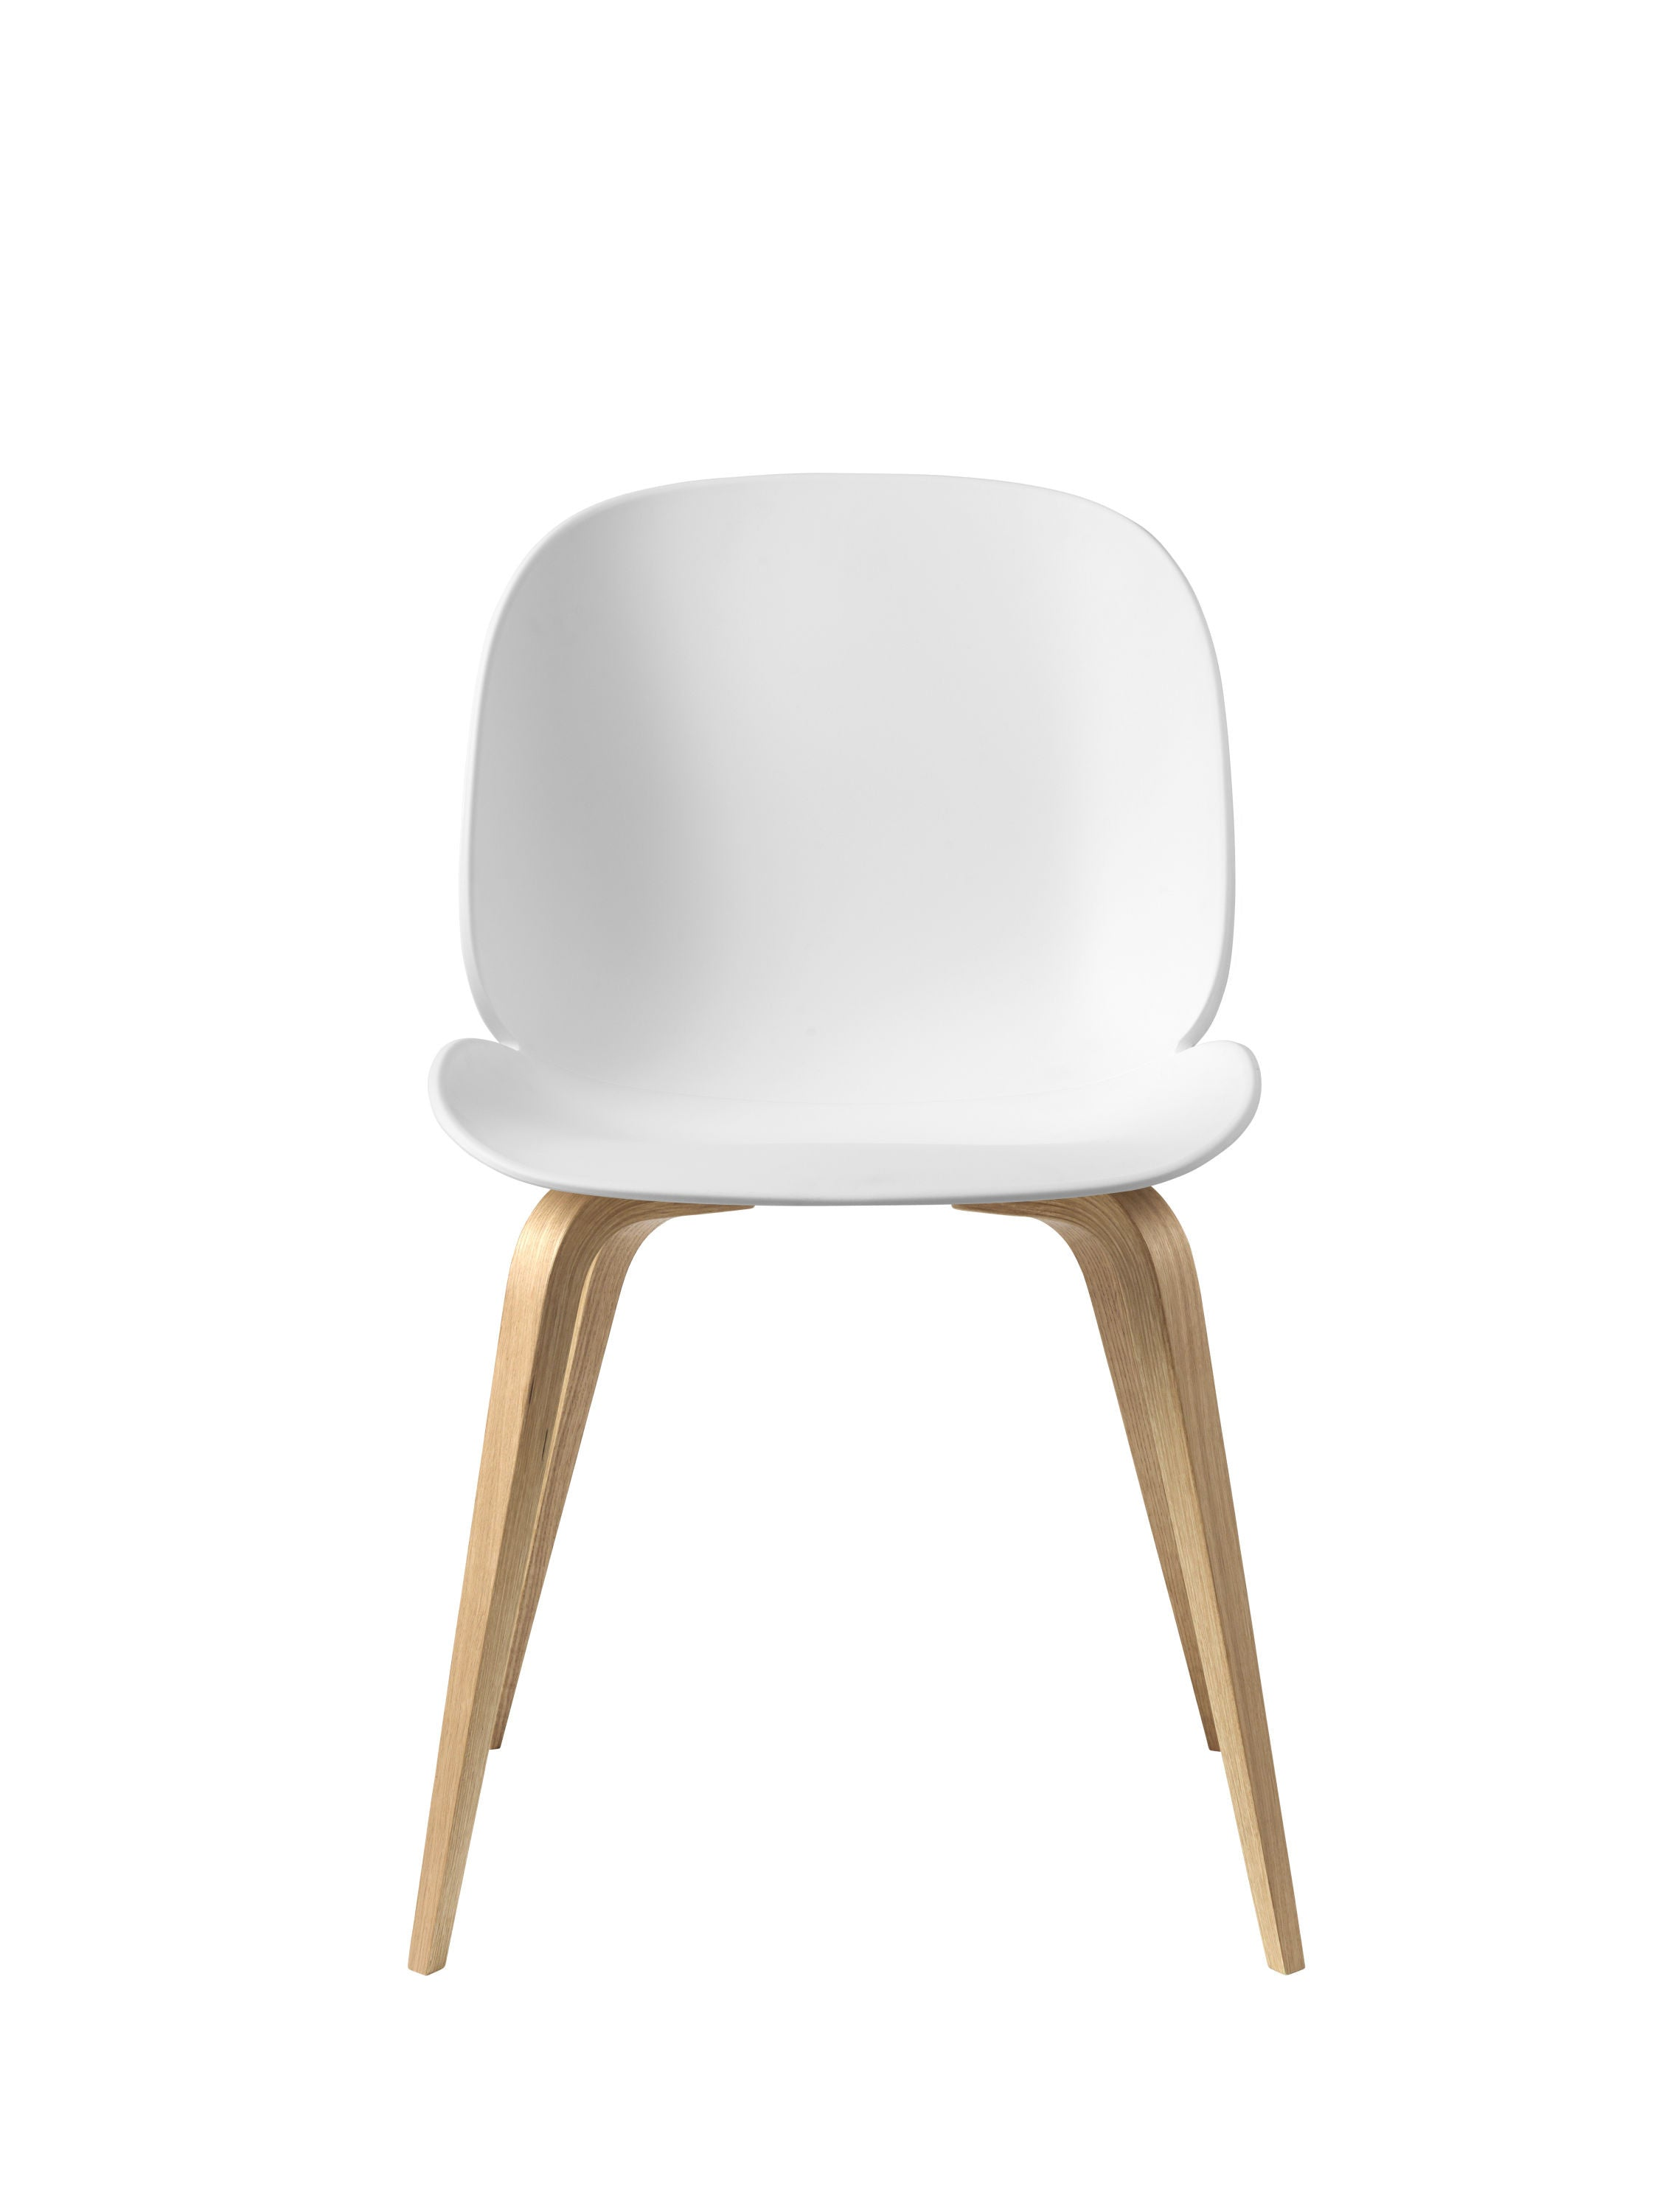 Beetle Dining Chair - Un-upholstered Oak base, White shell fra GUBI